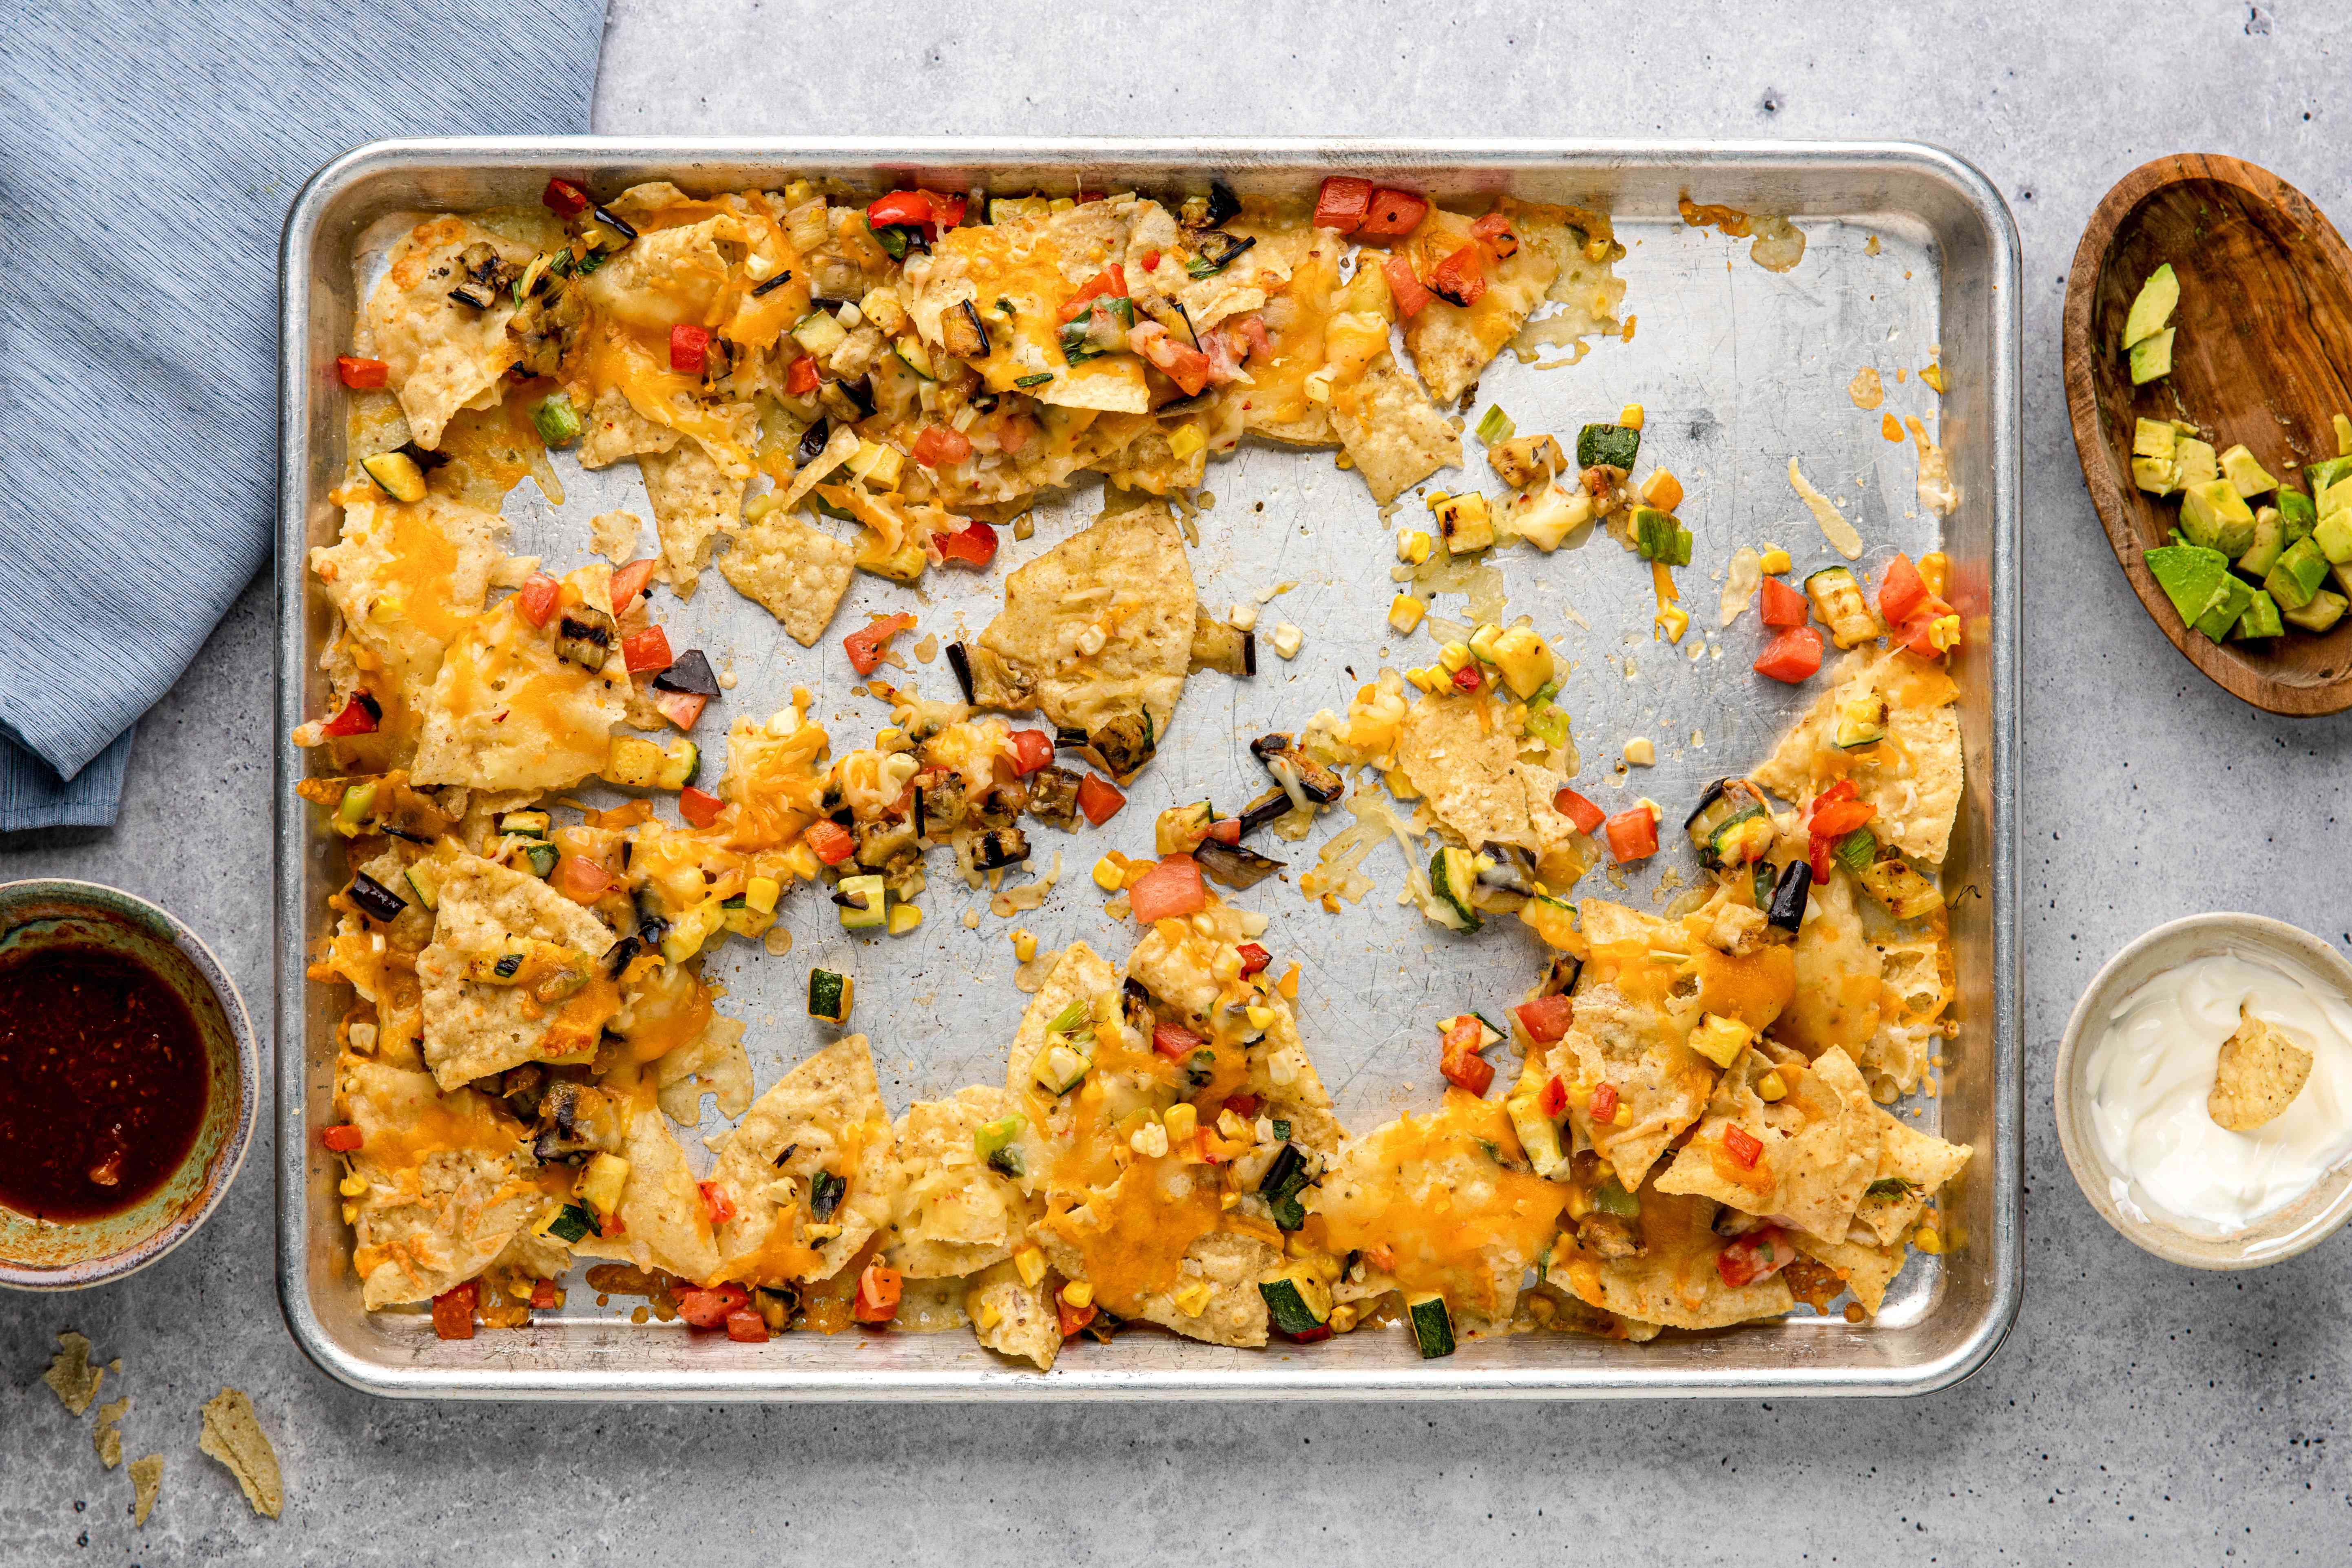 A baking sheet with half of the grilled summer vegetable nachos eaten.